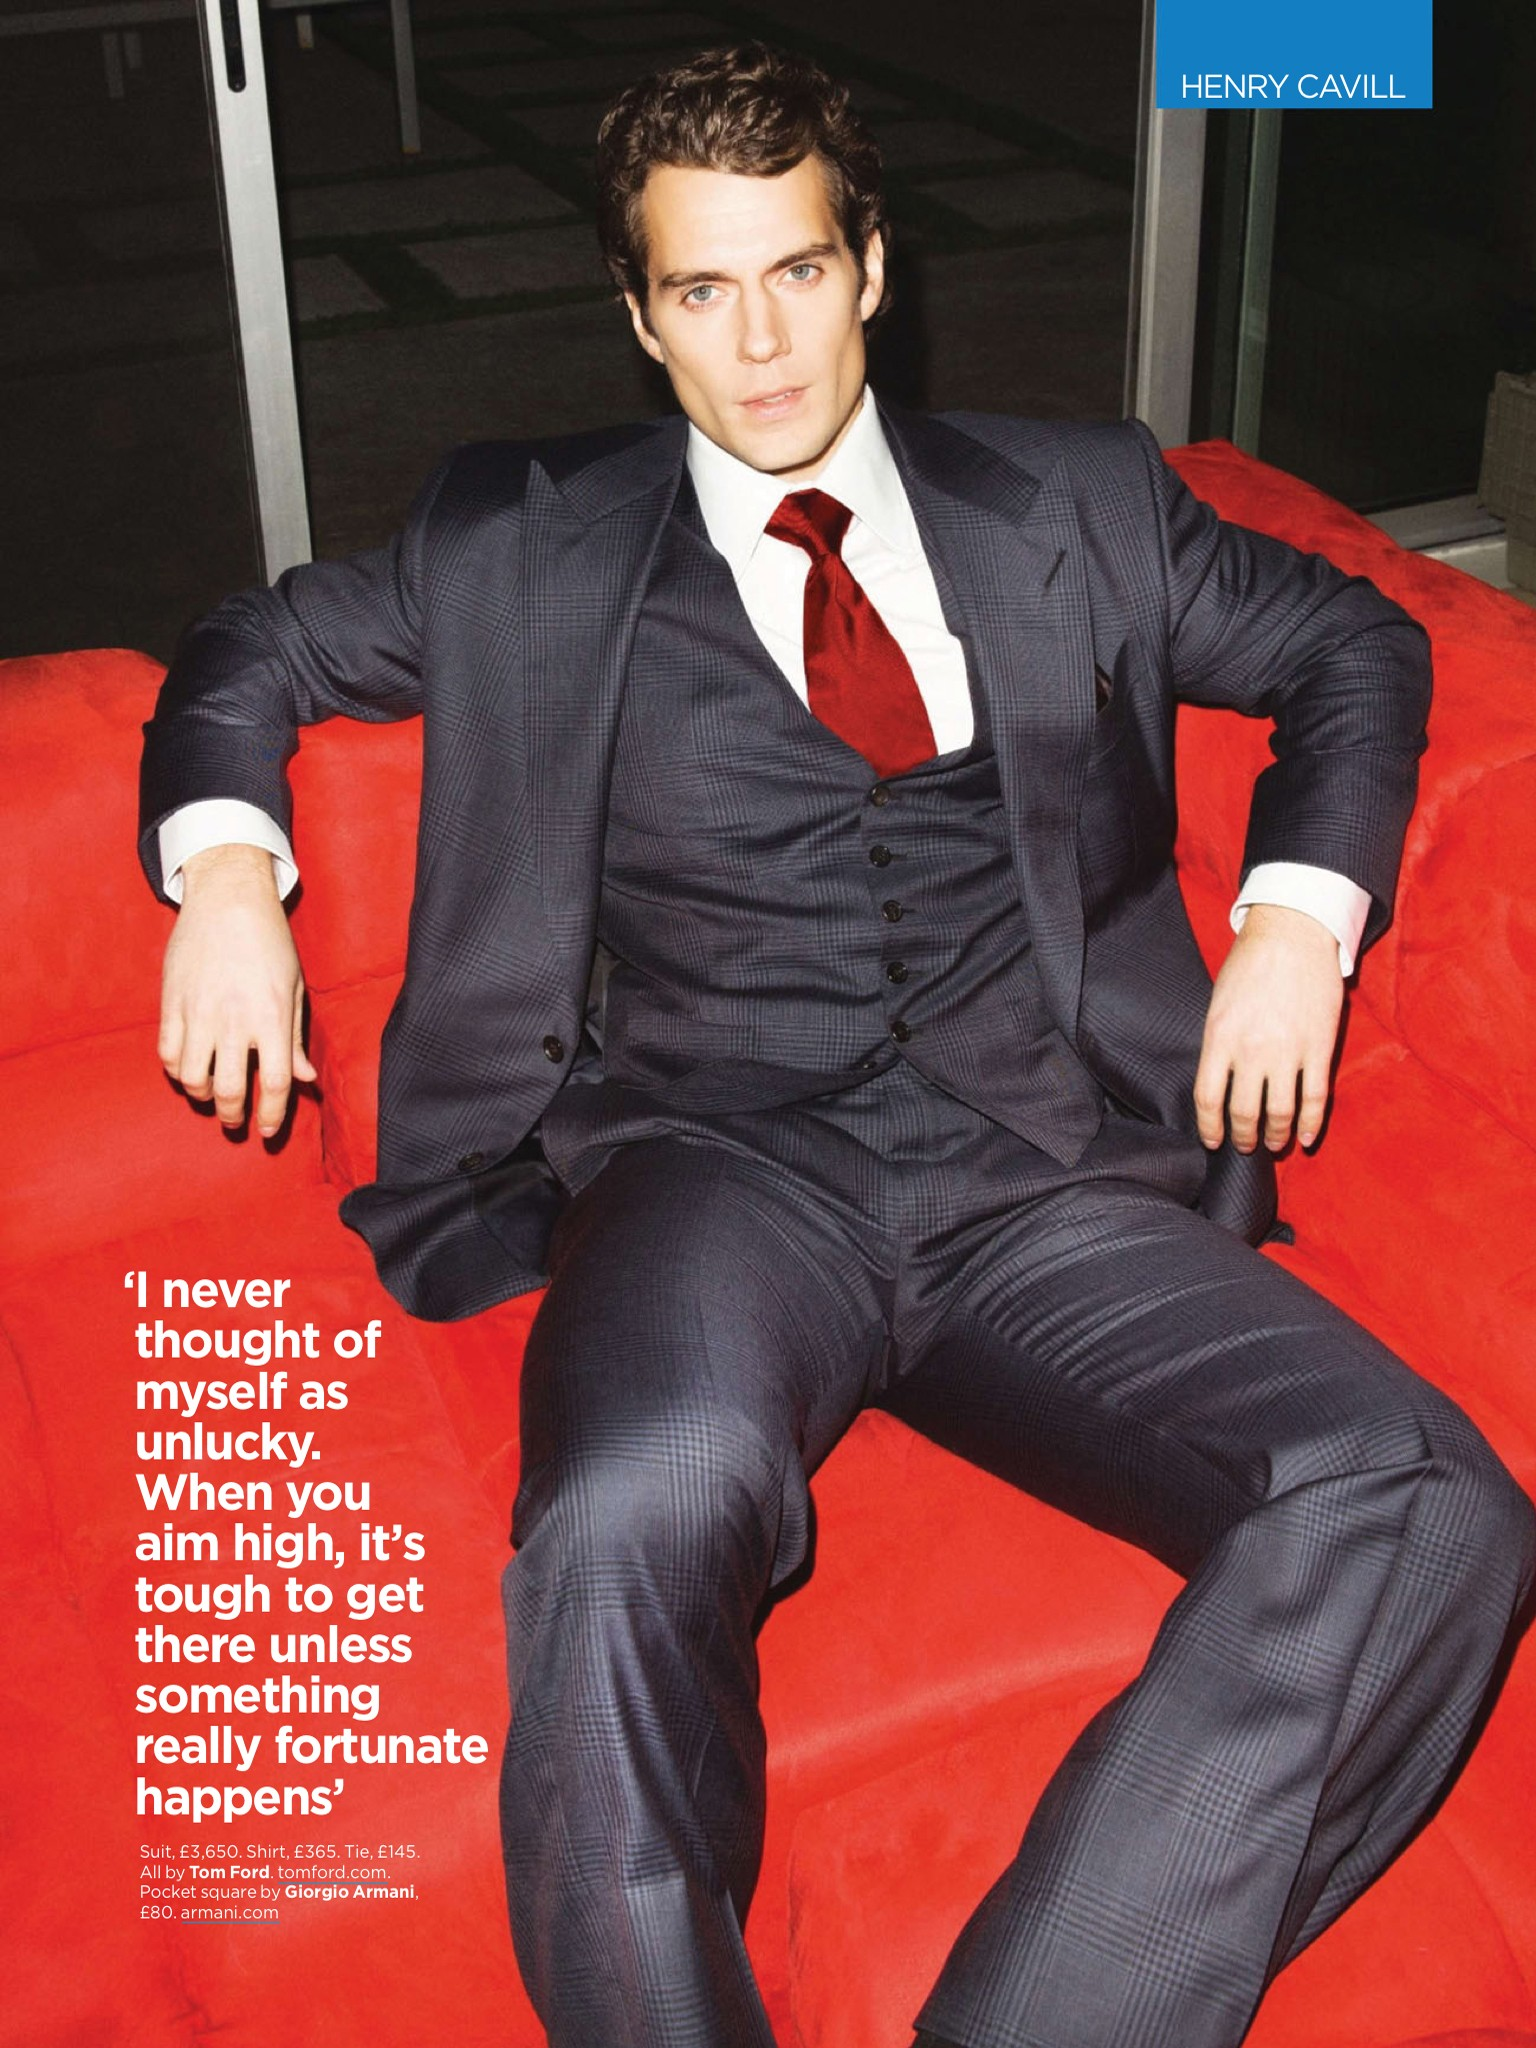 Henry Cavill On The Cover Of British Gq Magazine S June